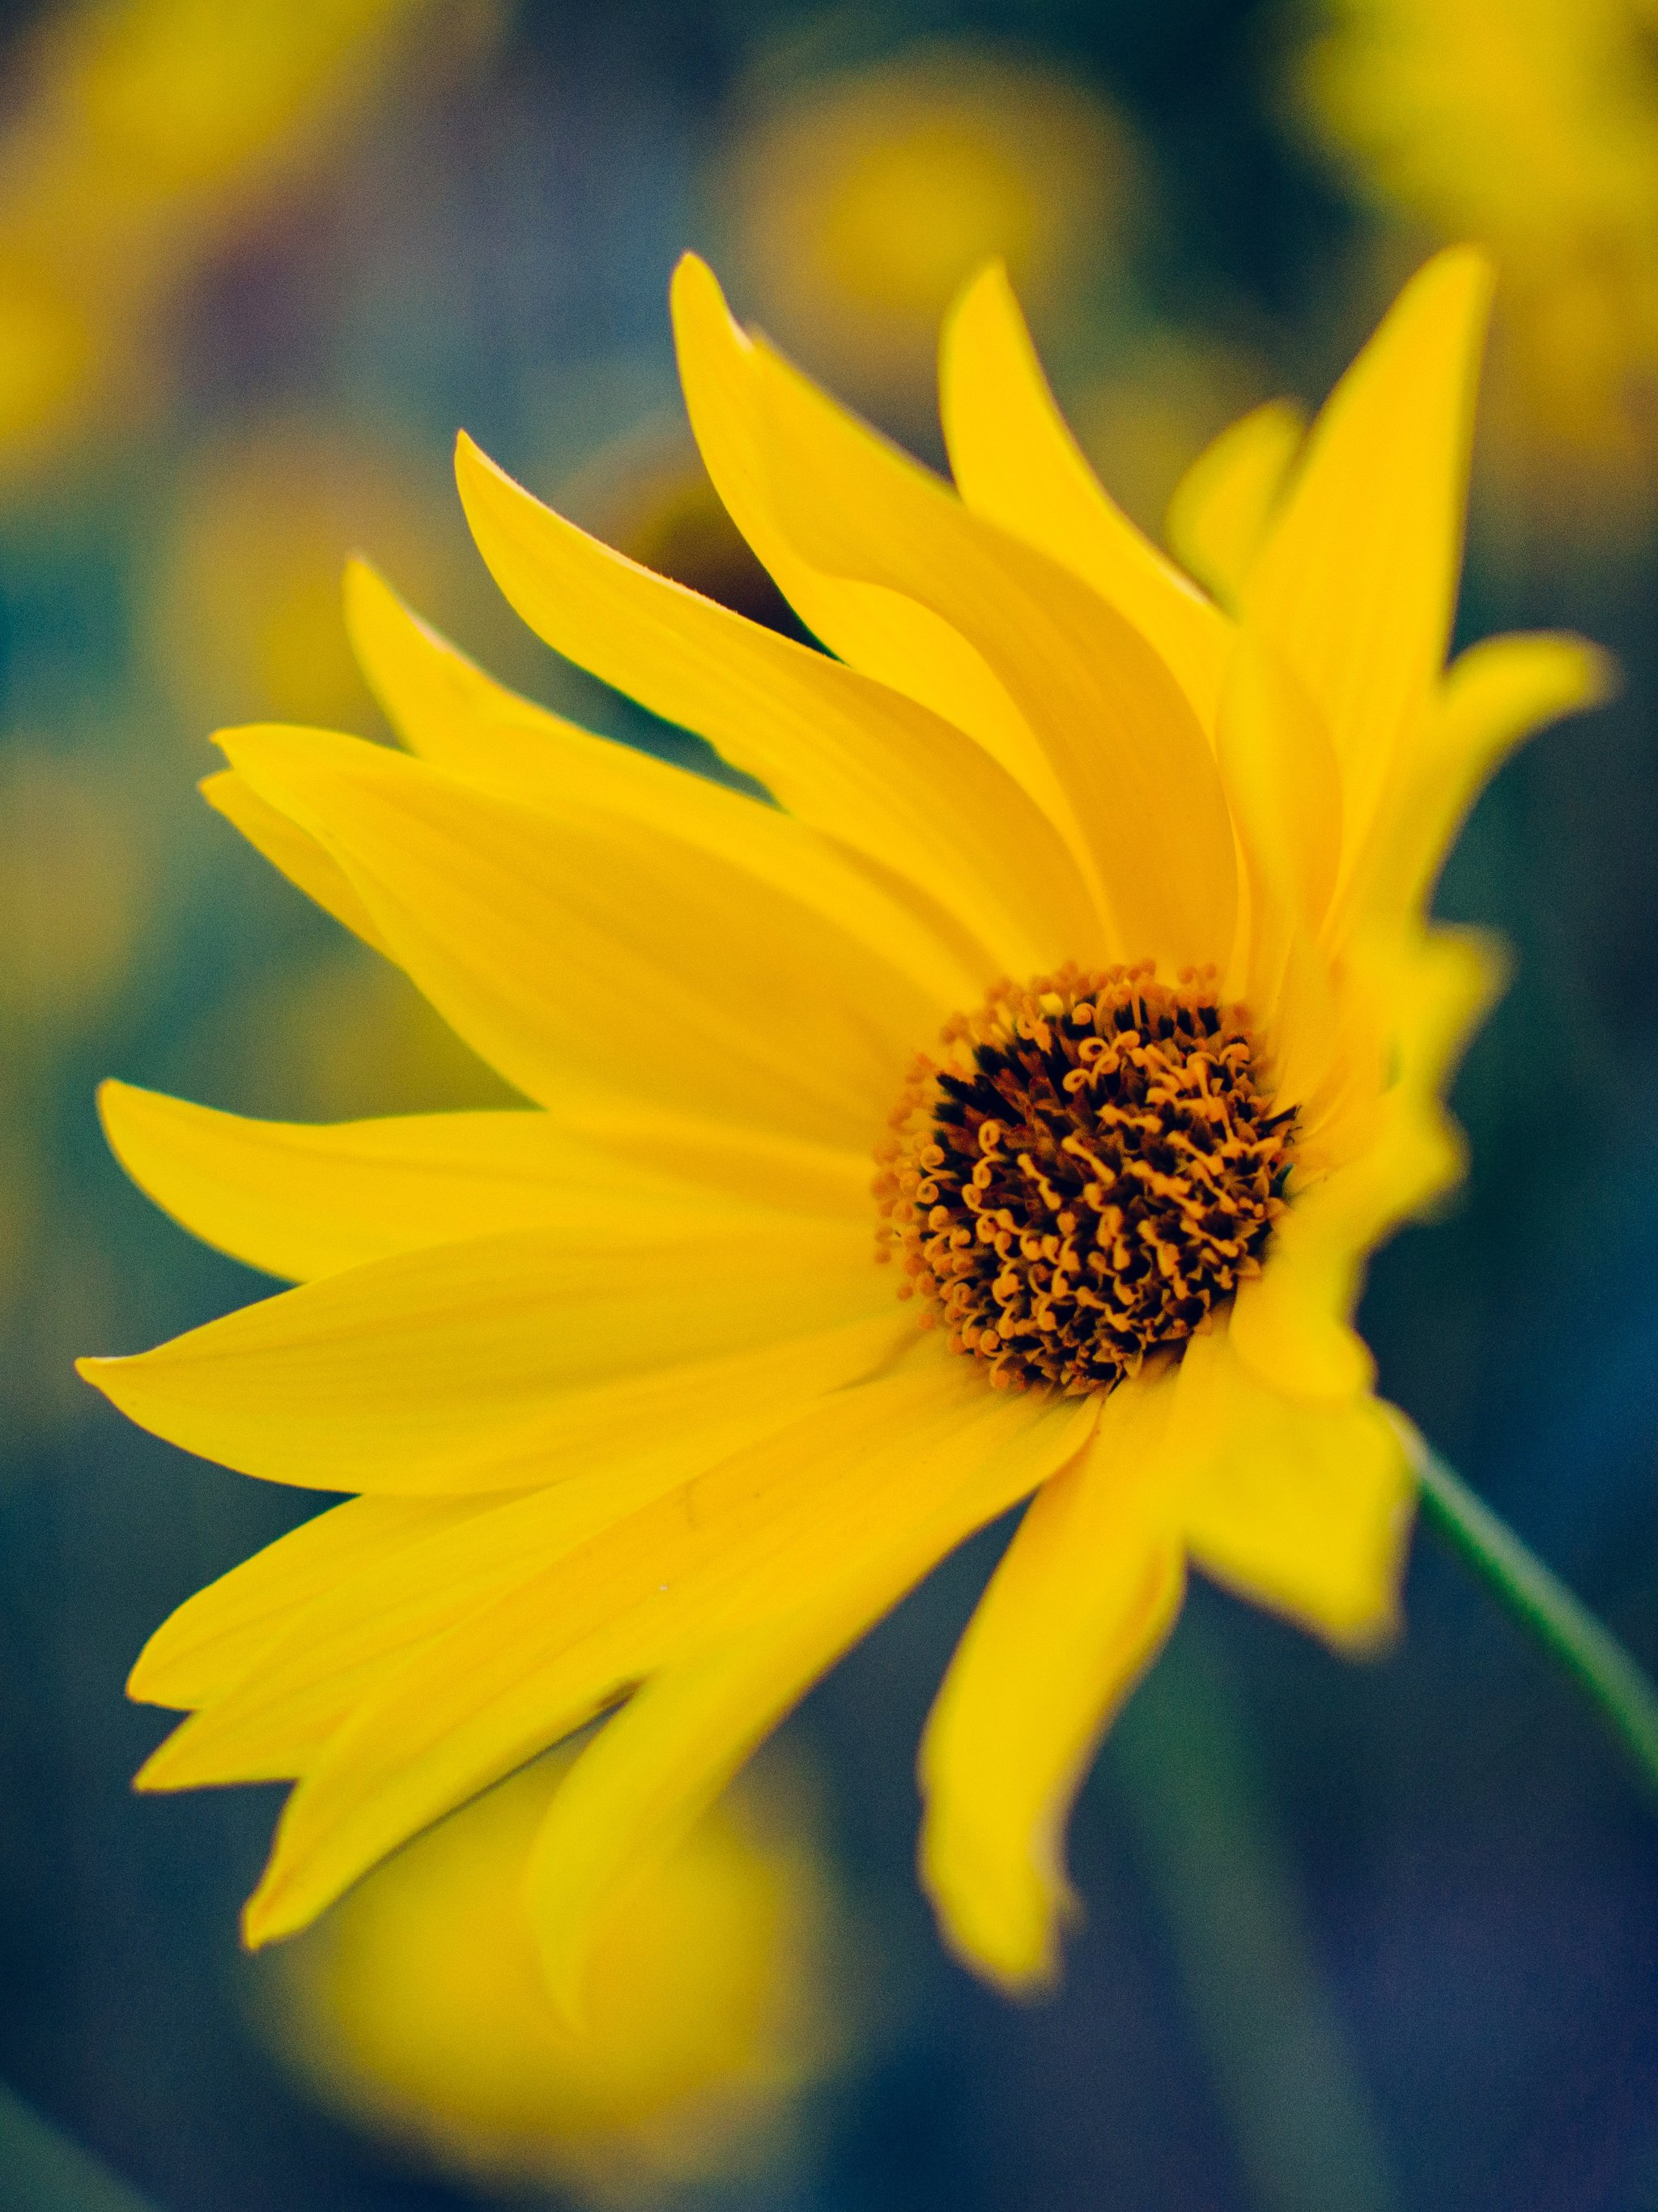 Yellow Flower Wallpaper , iPhone, Android \u0026 Desktop Backgrounds